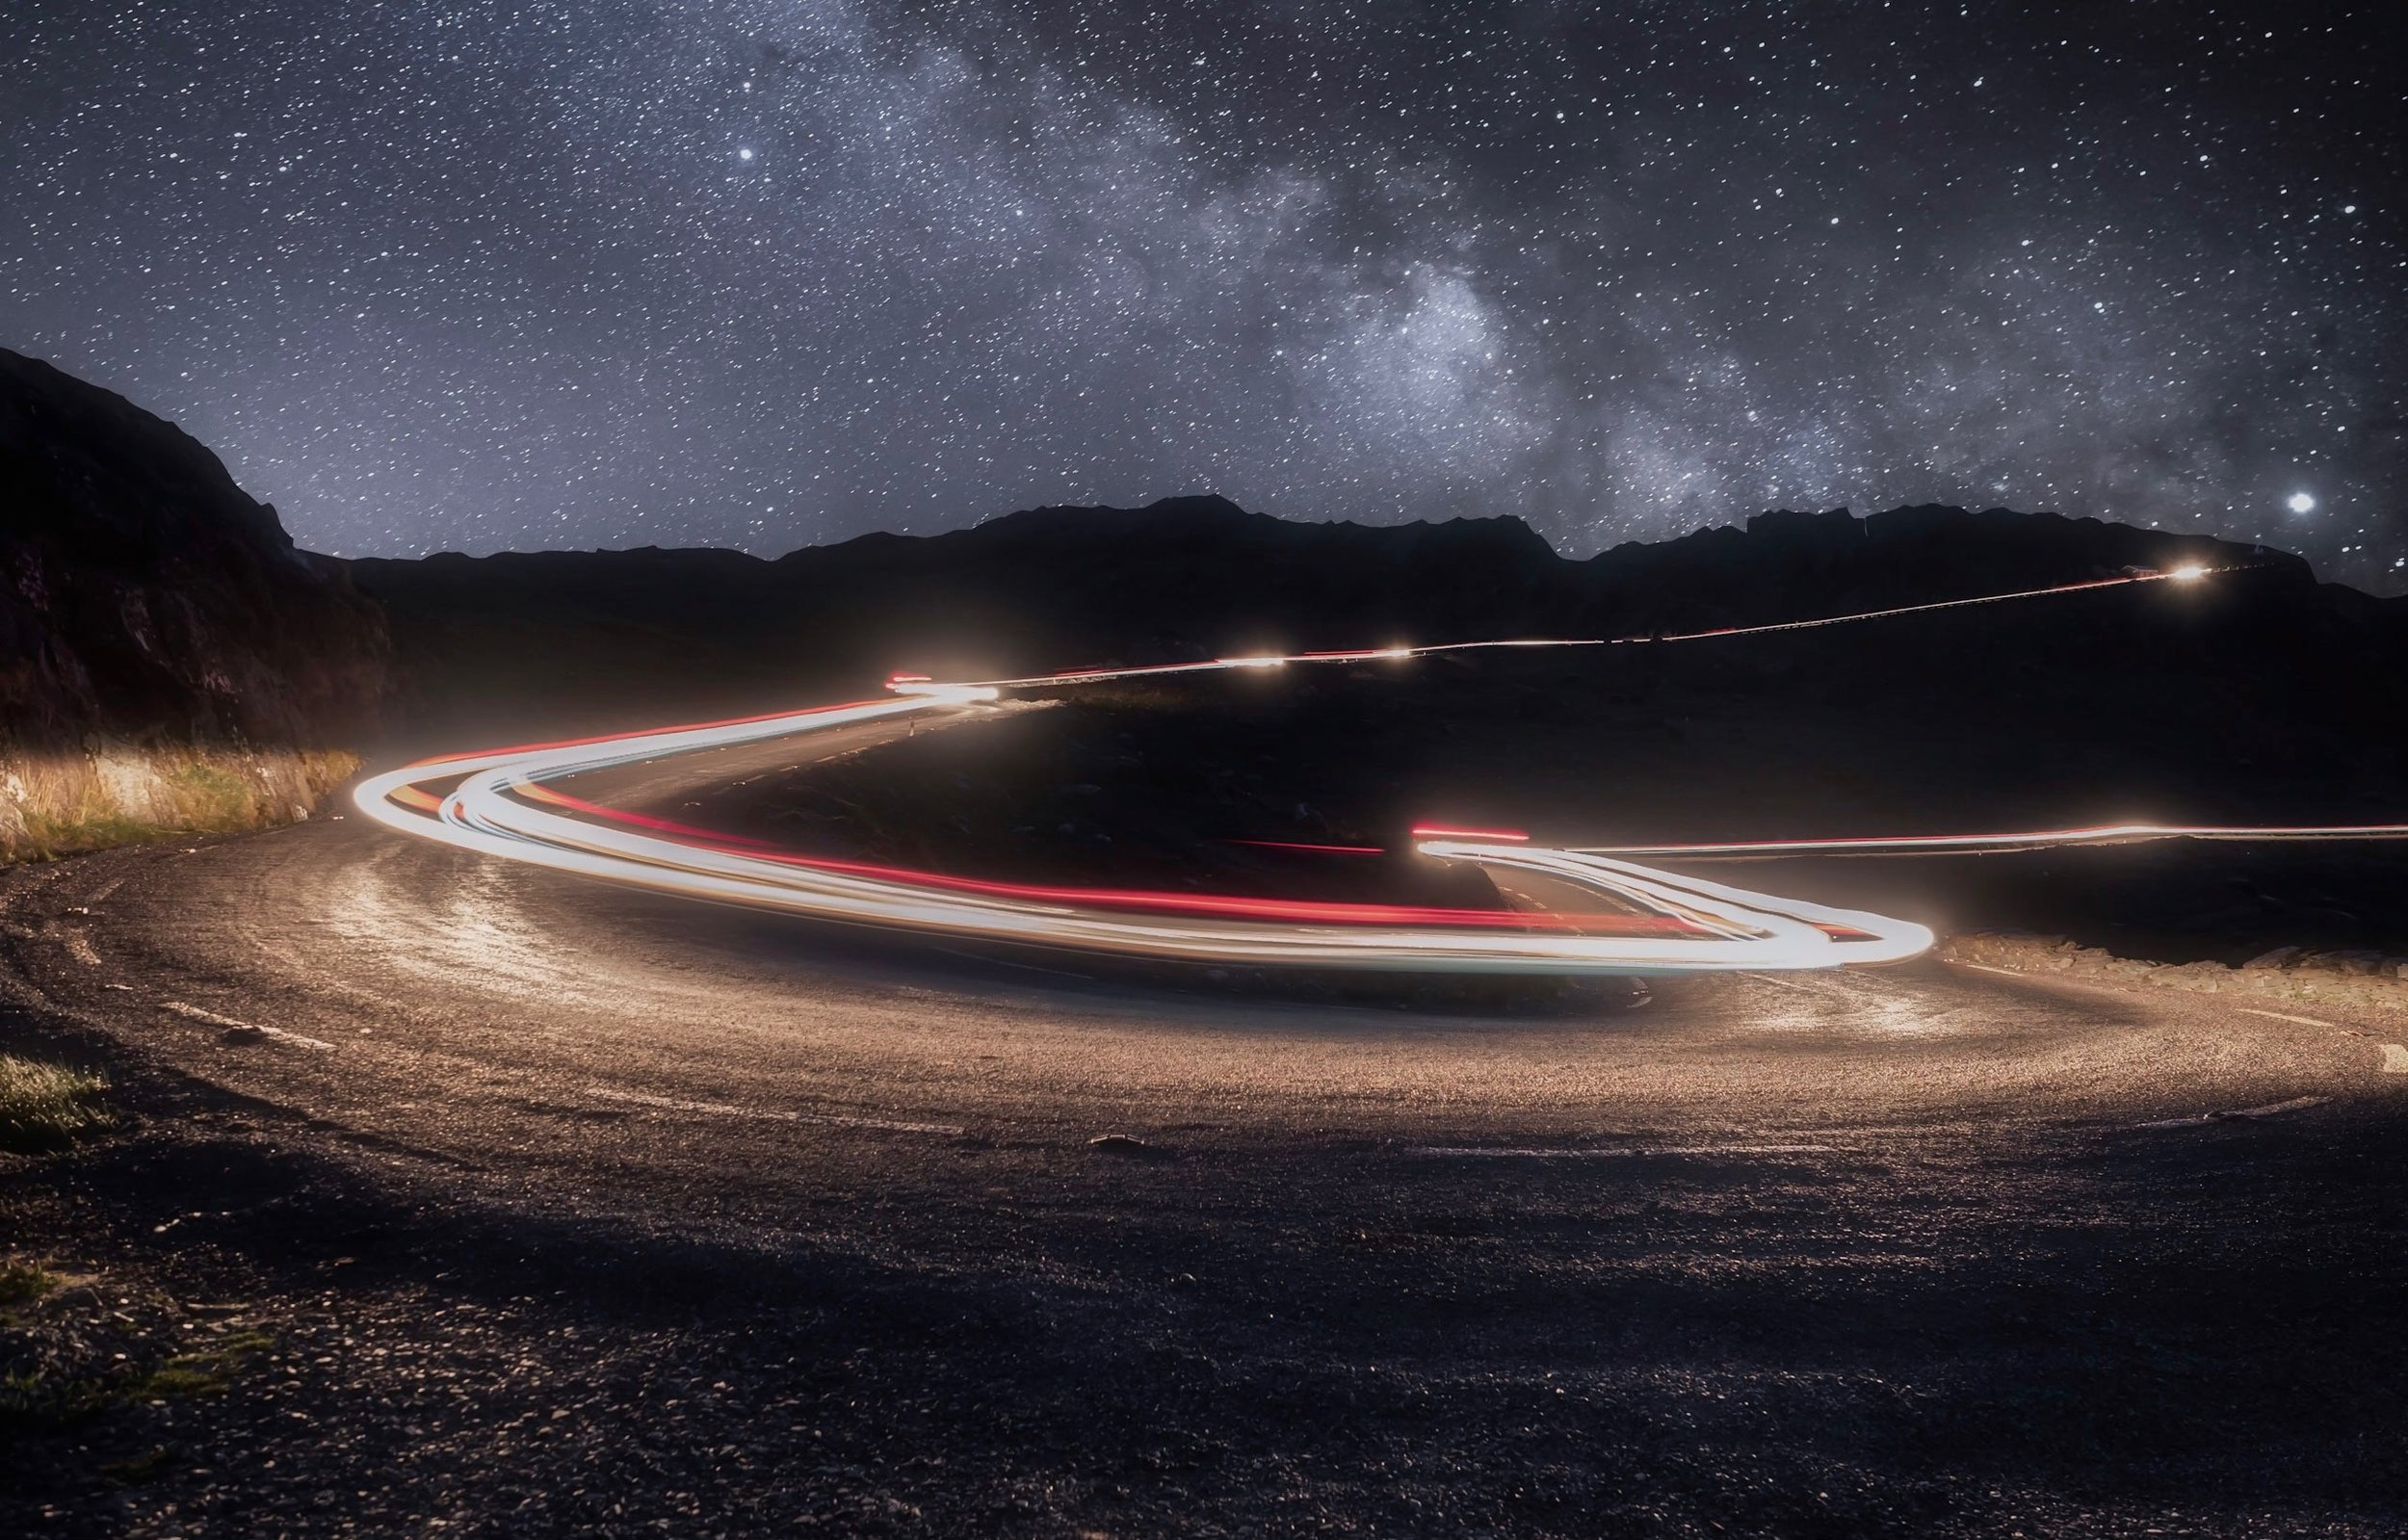 Composite image where I combined Light trails with a Milky Way image. Light trails shot using live composite mode on my Em1 Mark 2. Milky Way was a stack of 10 images shot at ISO 2000, 20 seconds shutter speed.